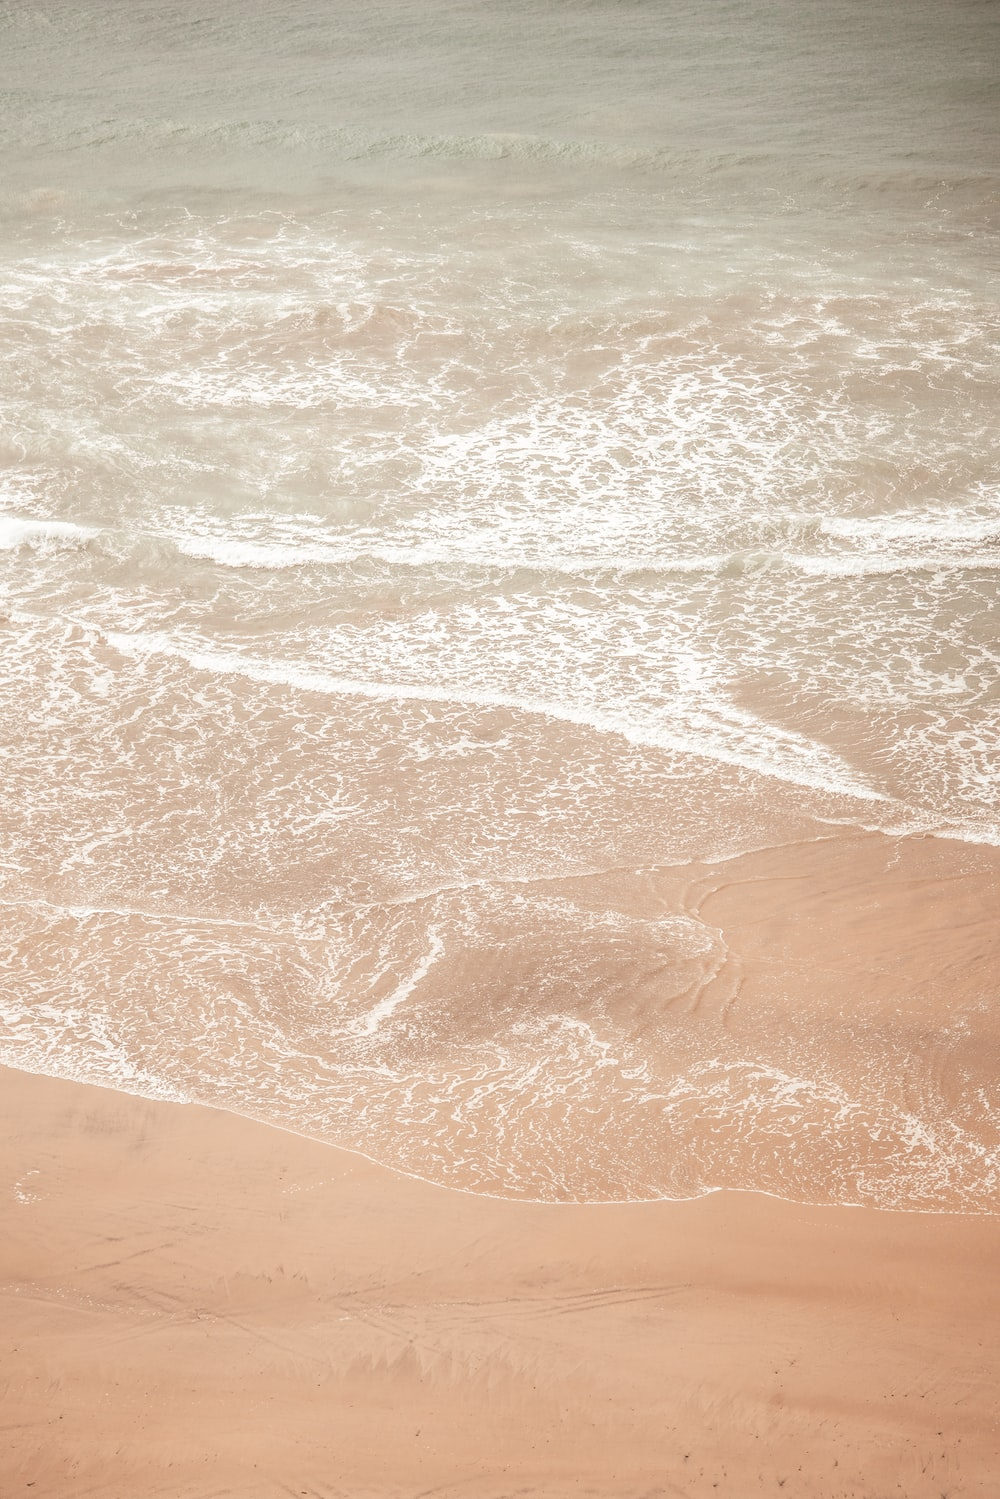 brown sand near body of water during daytime